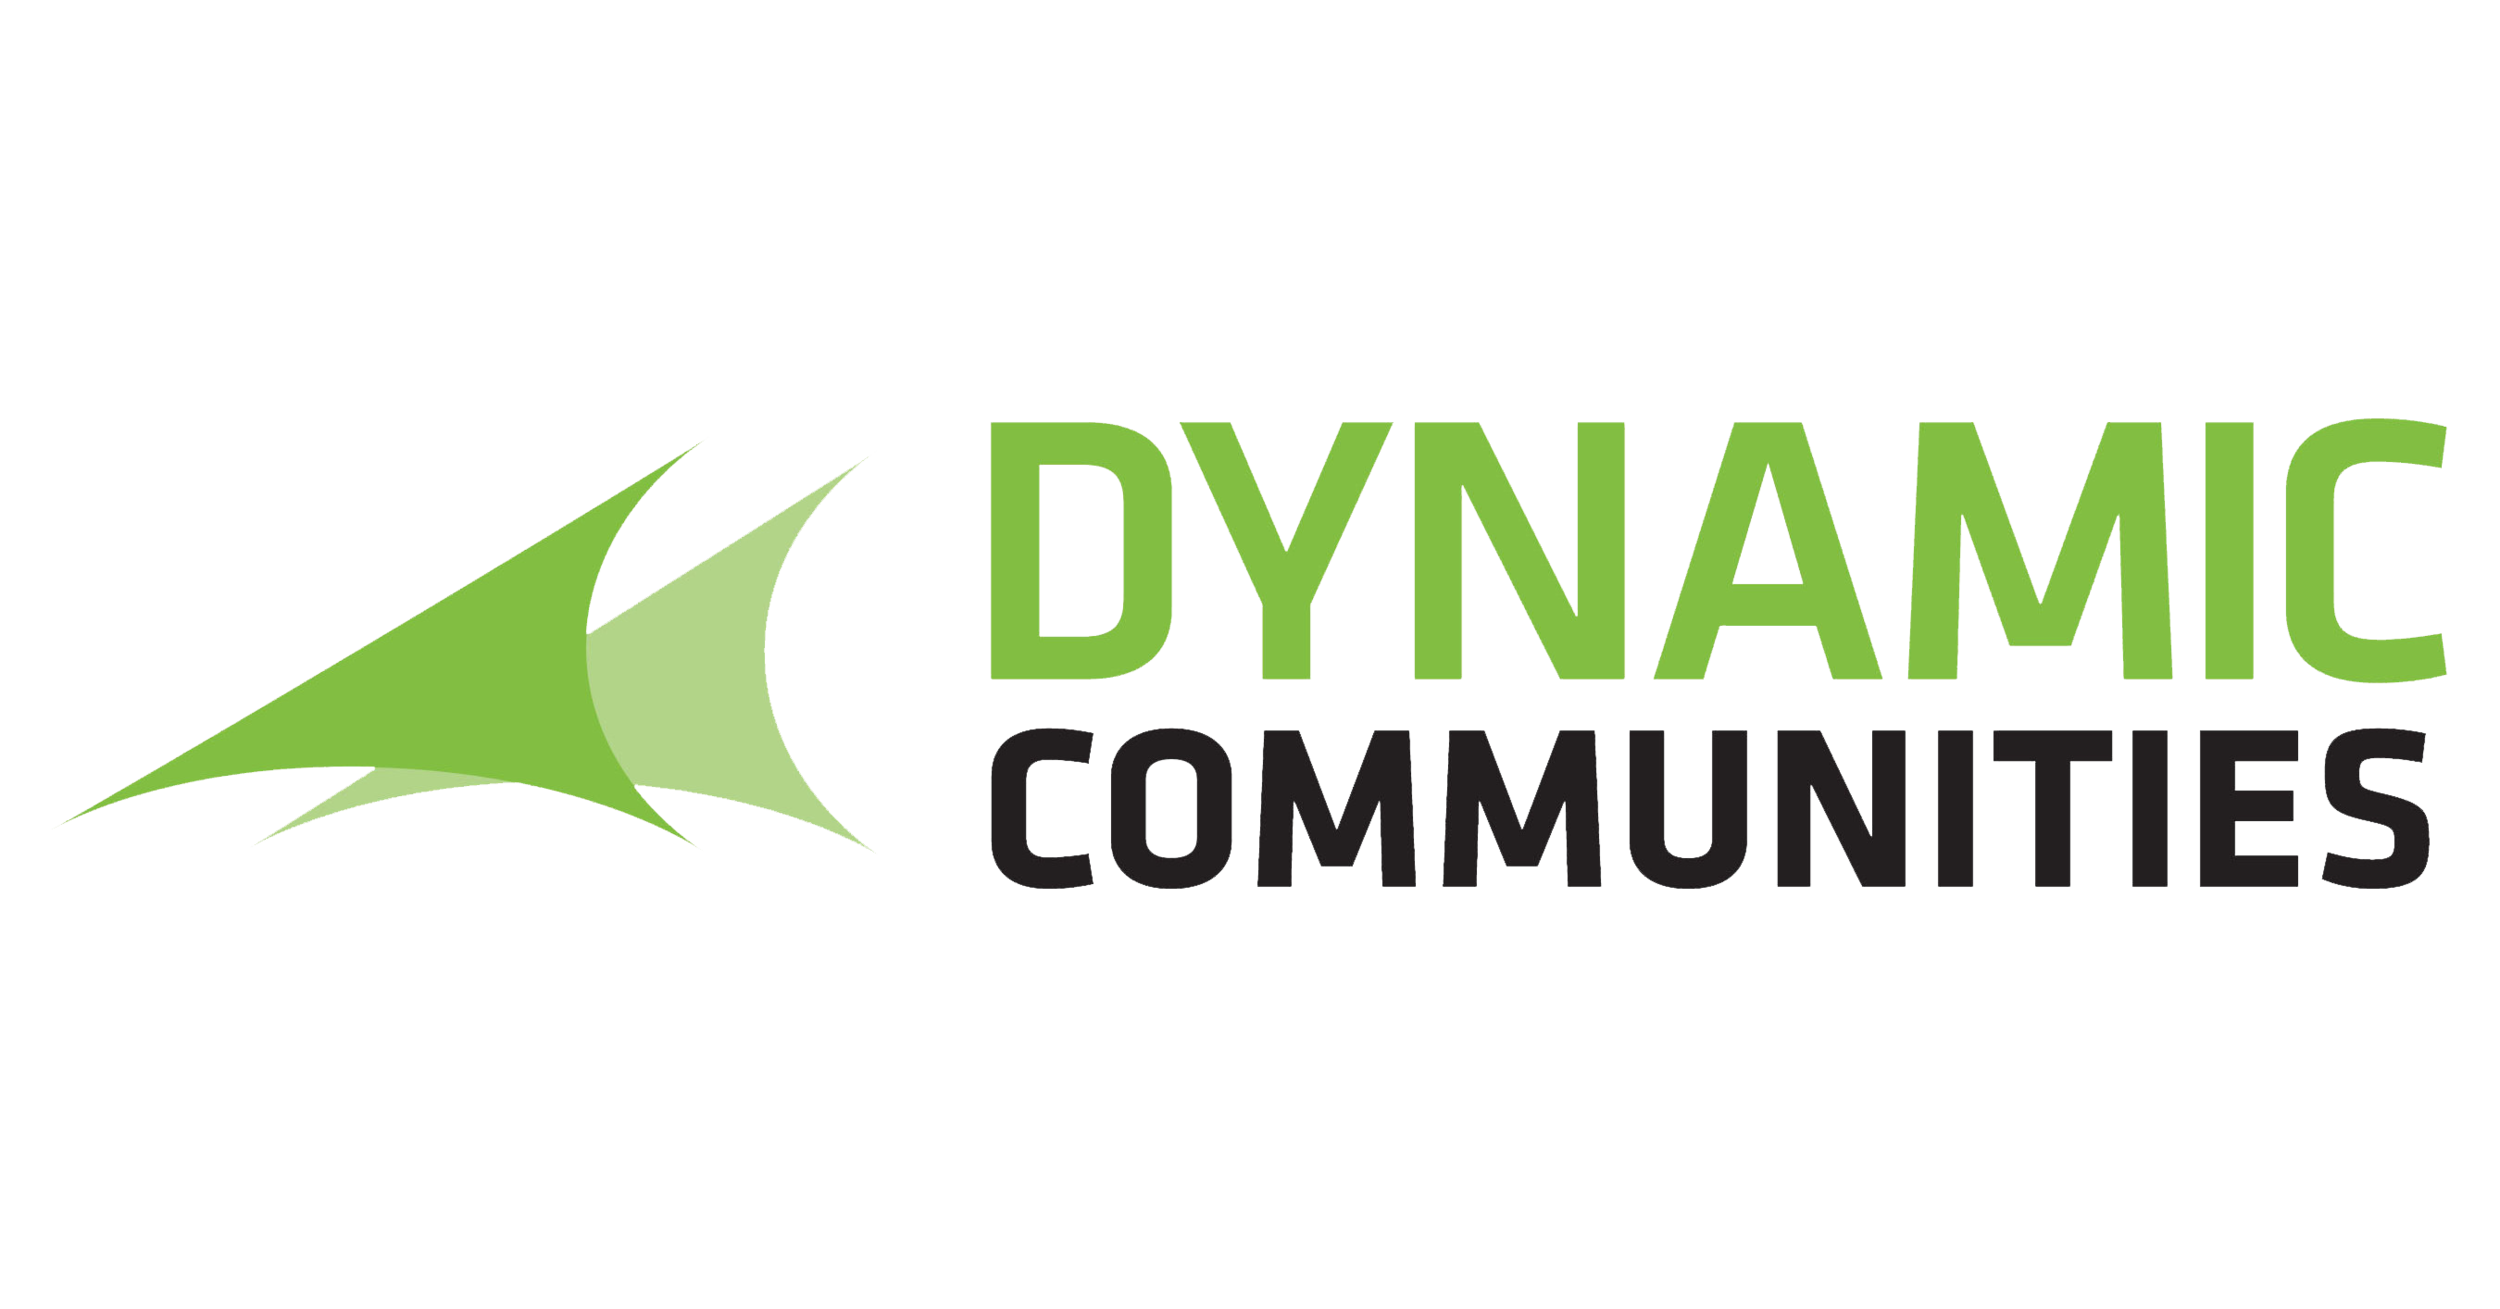 Dynamic Communities creates technology-centric communities to exchange ideas on how to best maximize industry knowledge through user-produced education, enriched networking, and conference attendance.